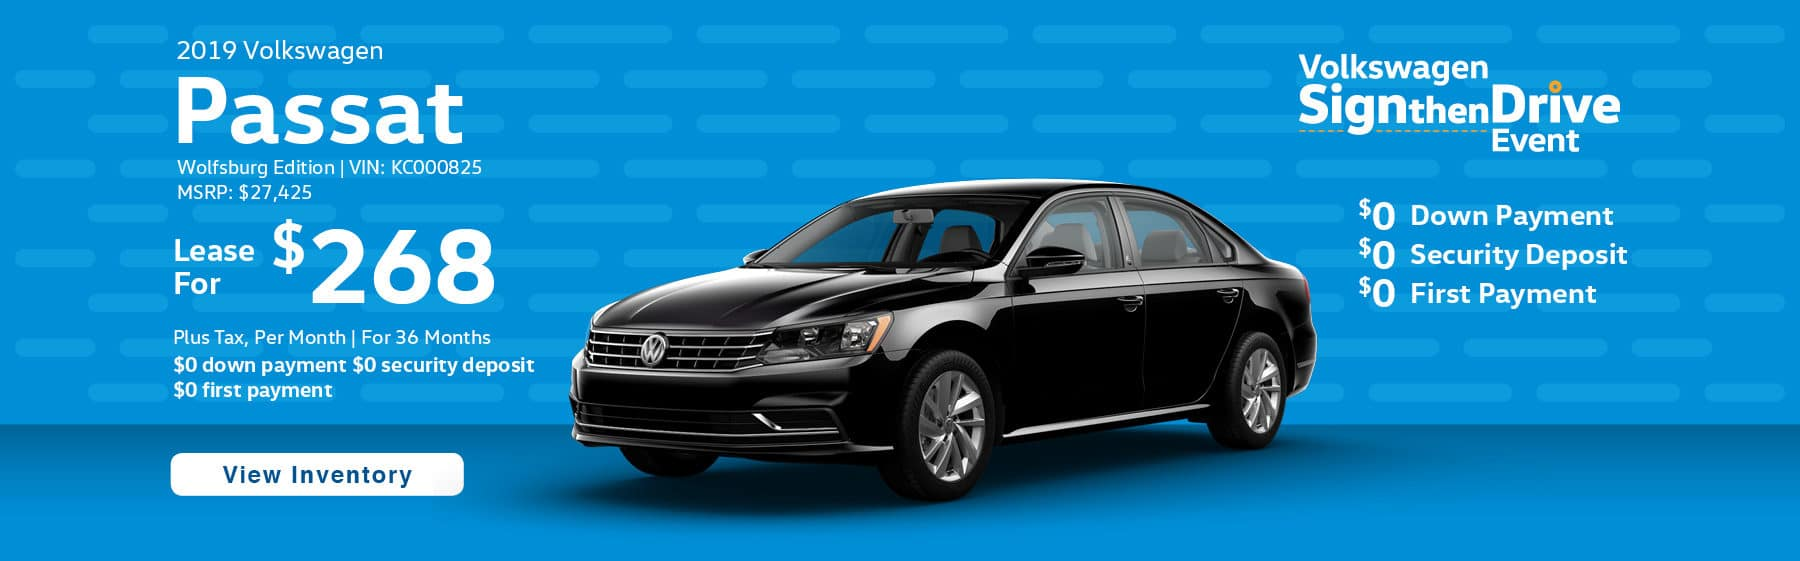 Lease the 2019 Volkswagen Passat Wolfsburg Edition for $268 plus tax for 36 months. $0 Down payment required.